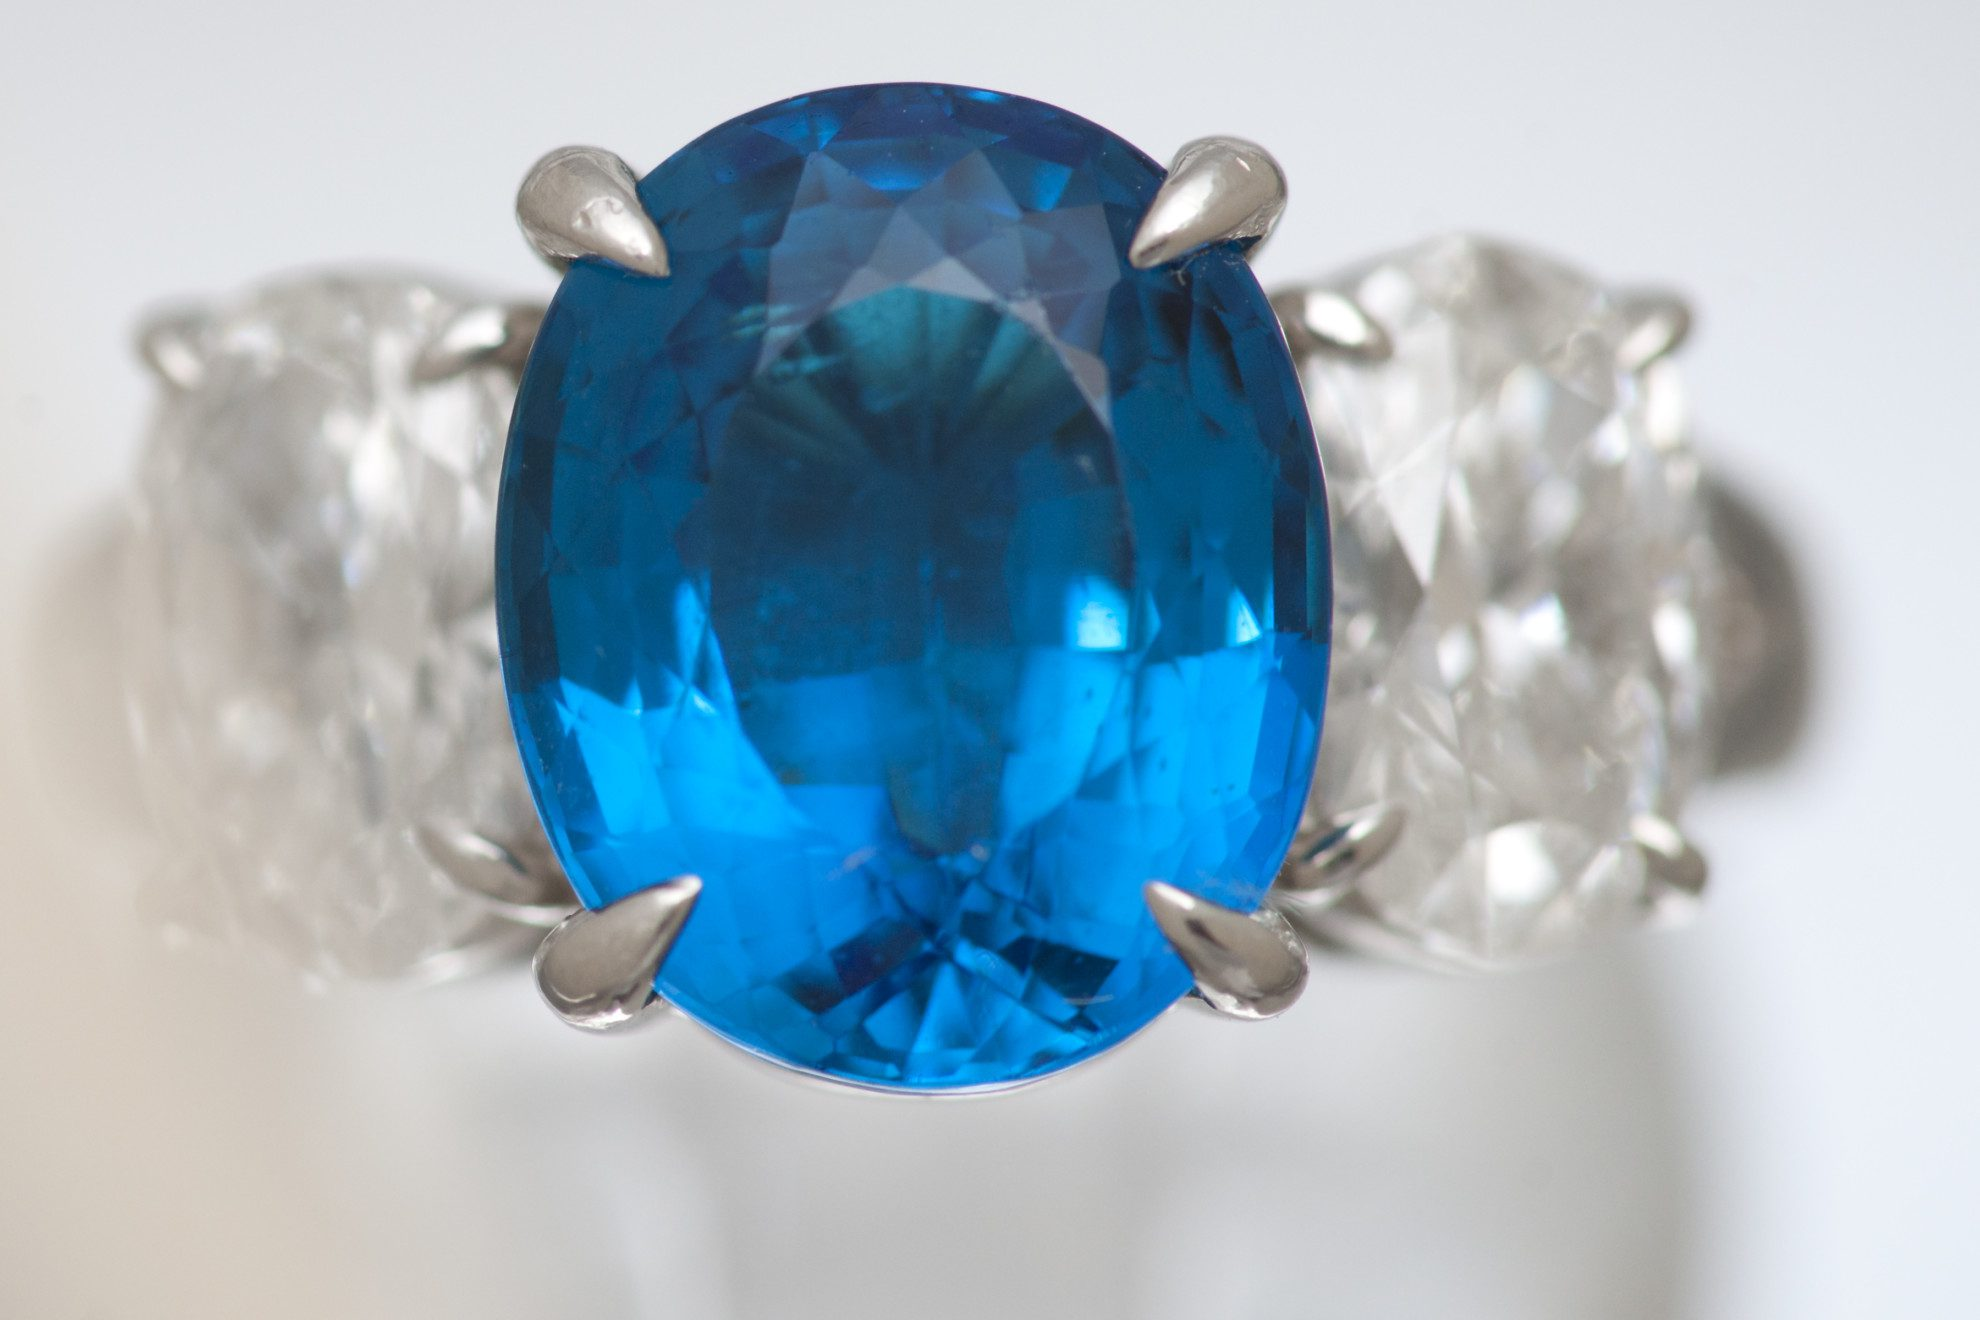 gems ajs articles jeremejevite sapphire at faceted rare